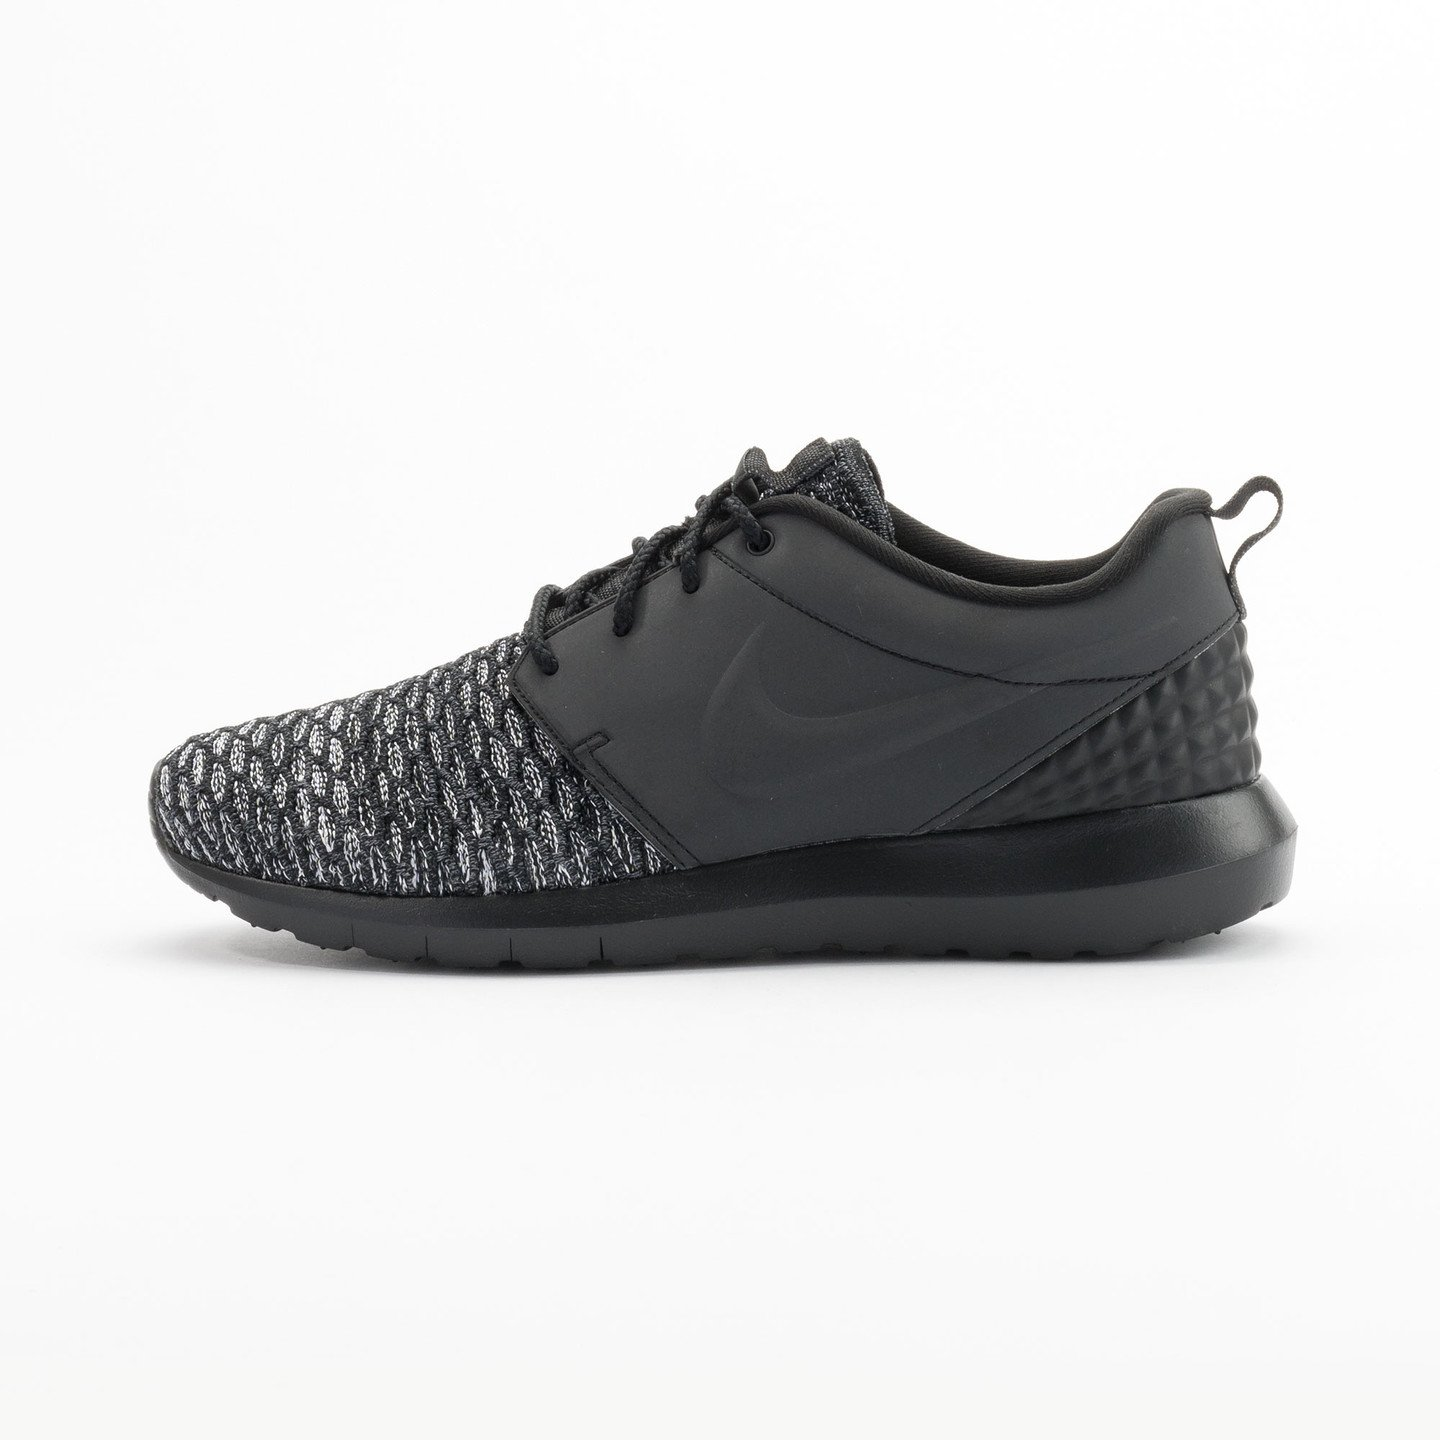 Nike Roshe NM Flyknit Premium Black / Black / Dark Grey / White 746825-002-44